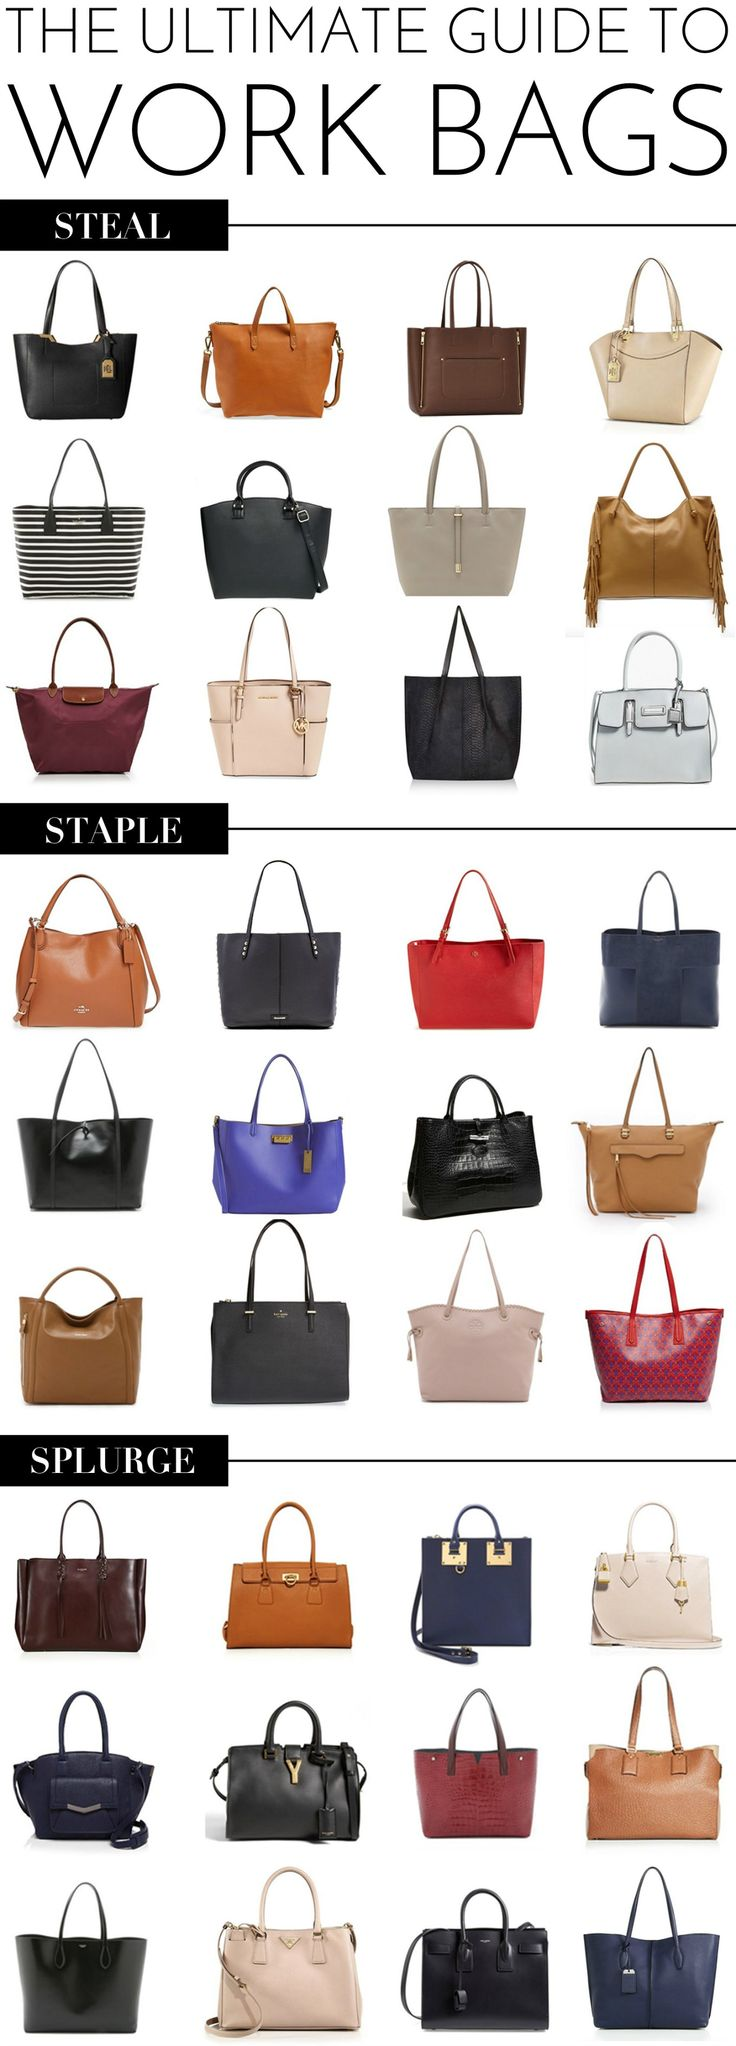 The Ultimate Guide to Work Bags + A Giveaway of Three Le Pliage Large Totes!